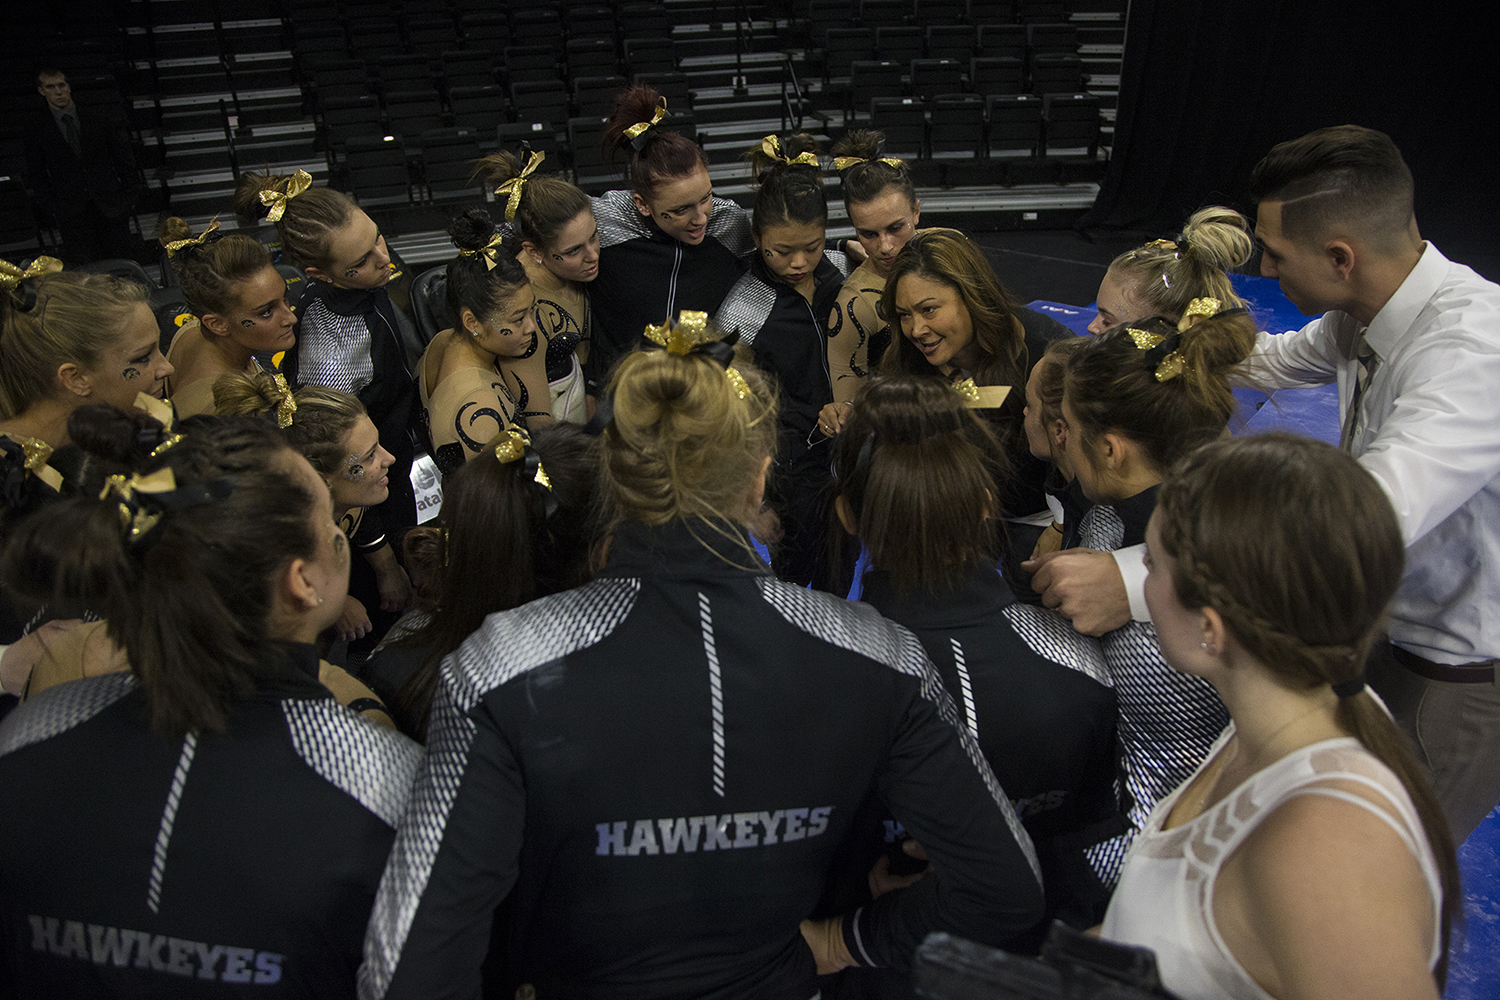 Iowa head coach Larissa Libby huddles with her athletes during a women's gymnastics meet in Carver-Hawkeye Arena on Friday, Jan. 13, 2017. The Hawkeyes defeated the Spartans, 195.475-193.875.